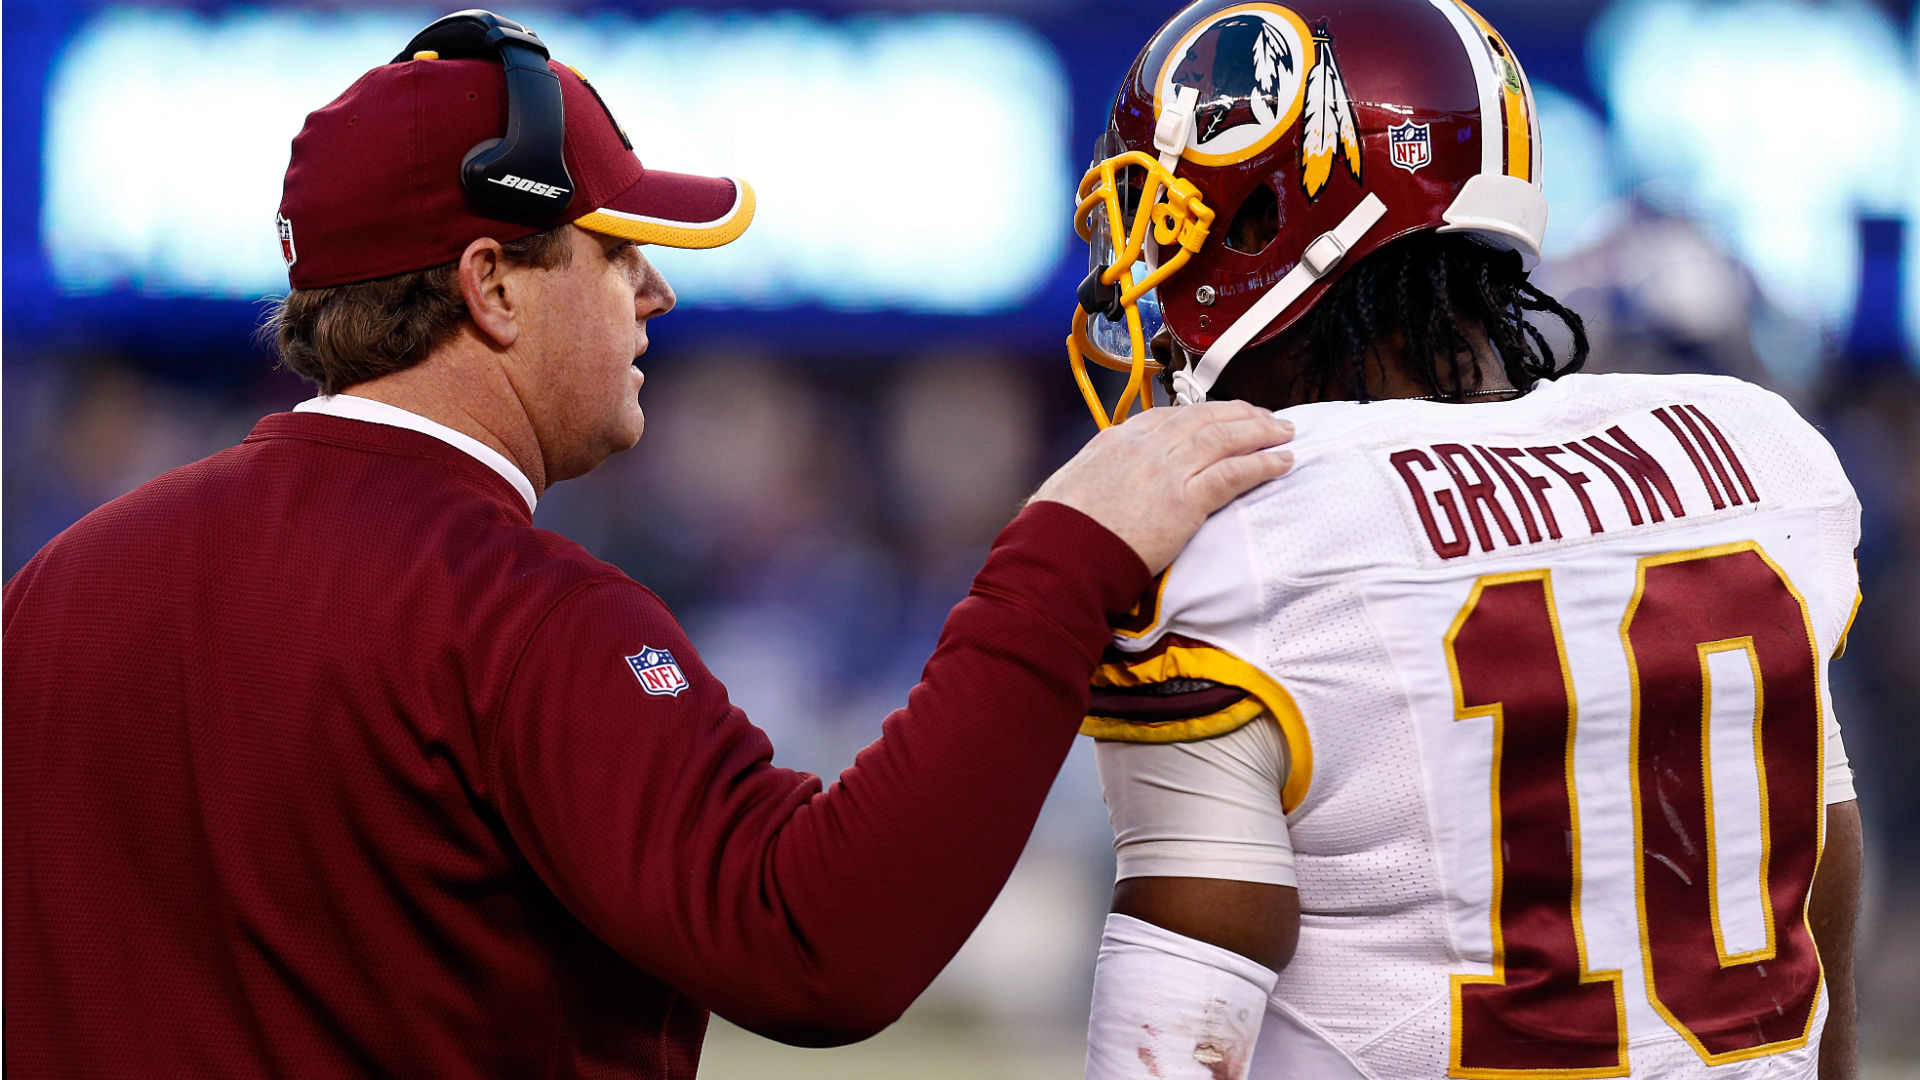 gruden-jay-121814-usnews-getty-ftr